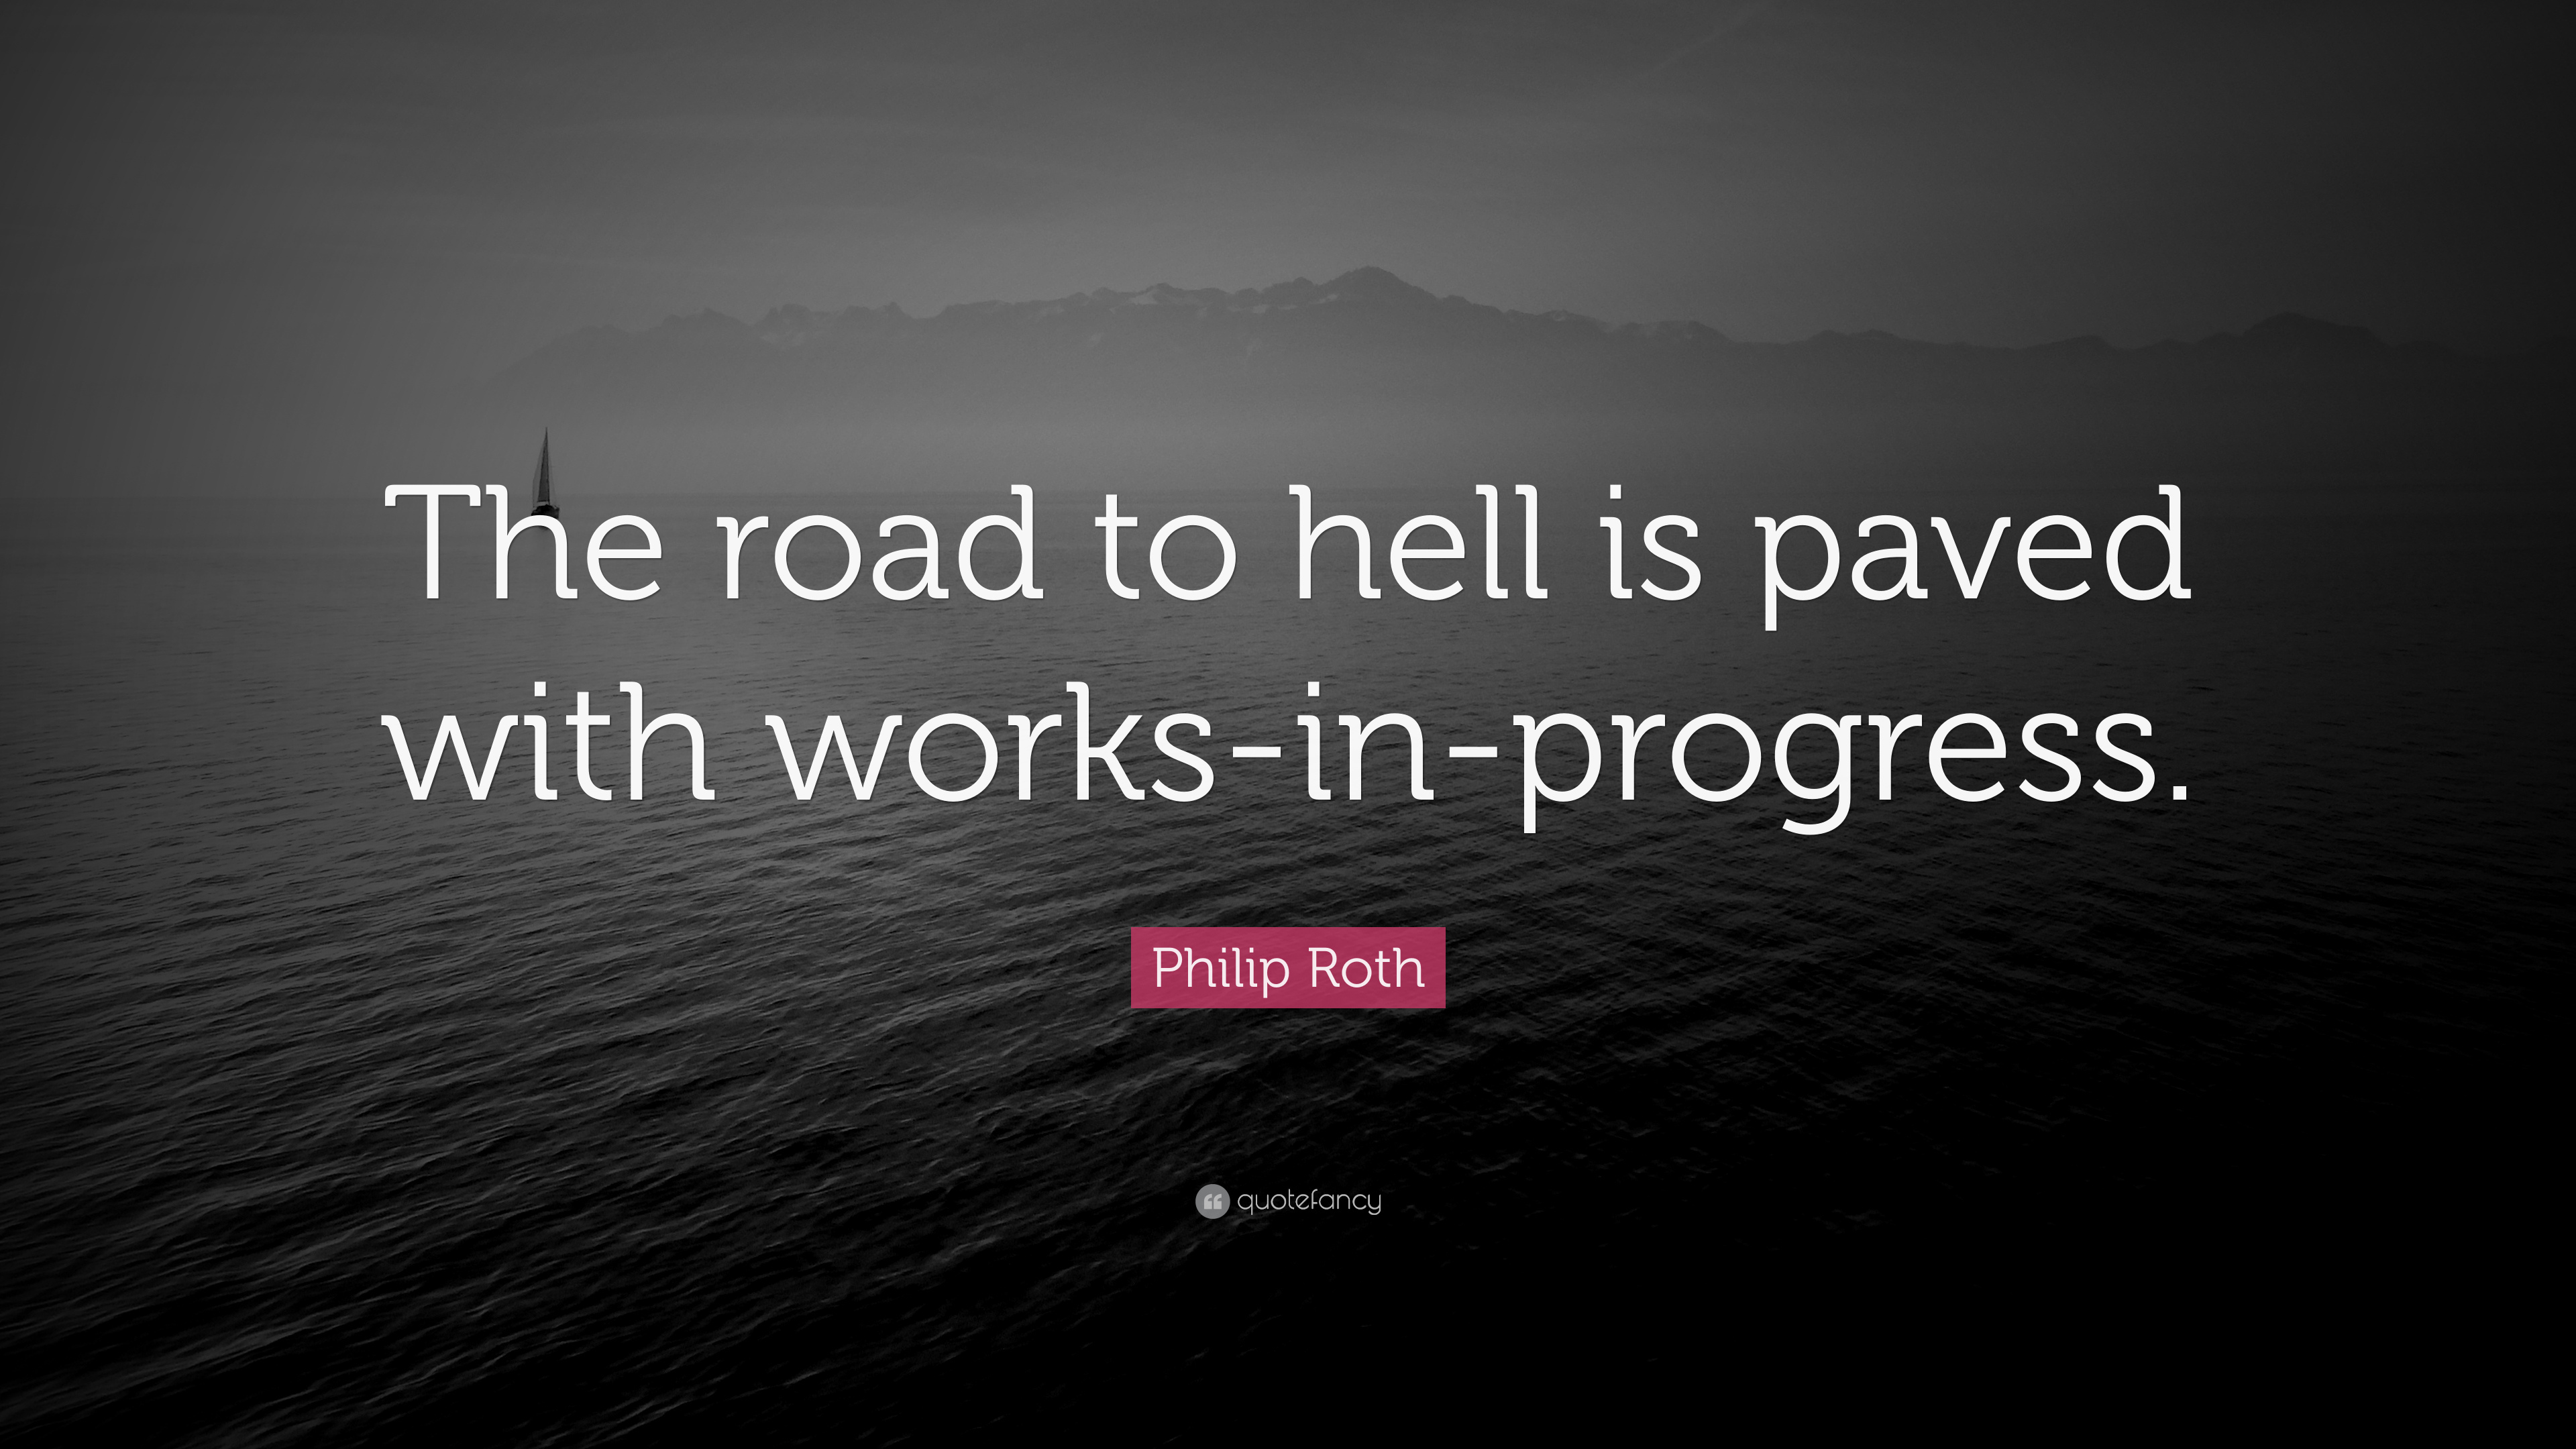 Philip Roth Quote The Road To Hell Is Paved With Works In Images, Photos, Reviews